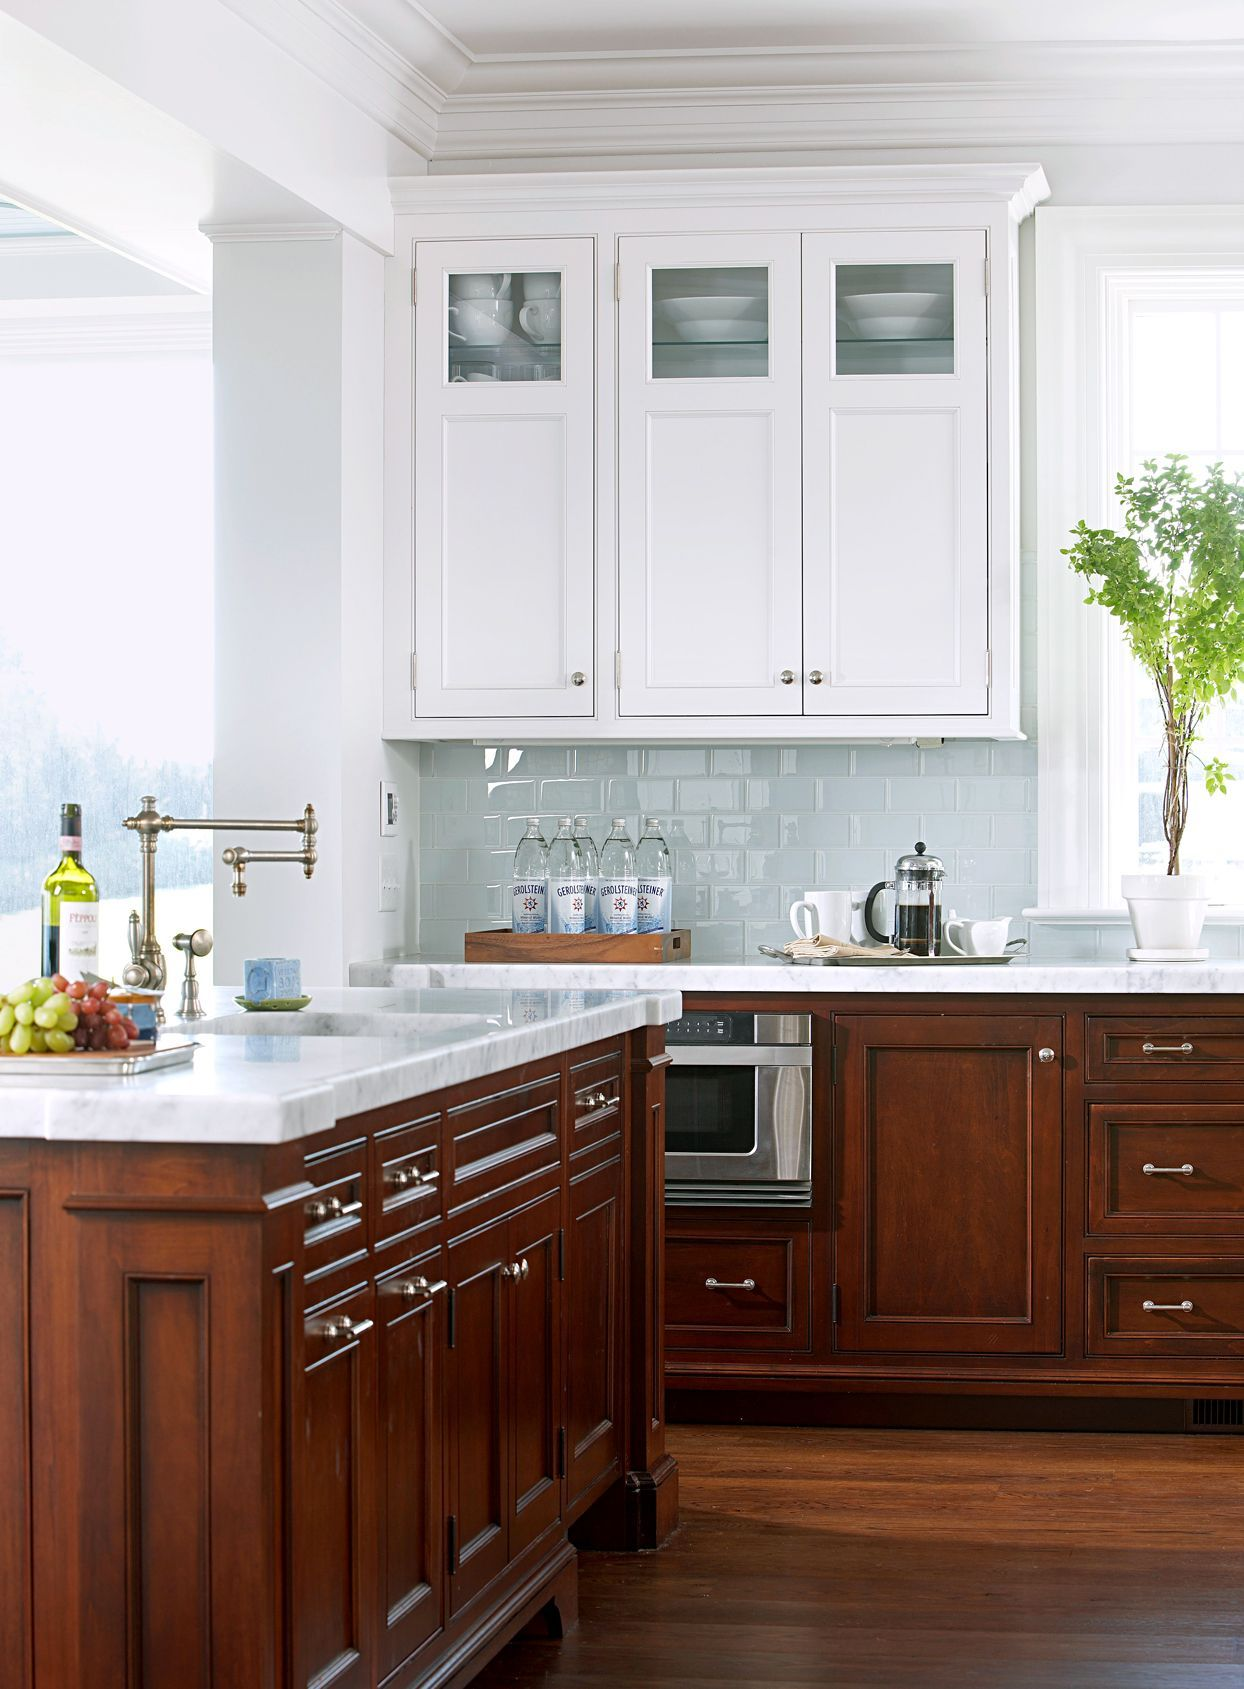 The Easiest Way To Clean Kitchen Cabinets Including Those Tough Grease Stains In 2020 New Kitchen Cabinets Upper Kitchen Cabinets Clean Kitchen Cabinets